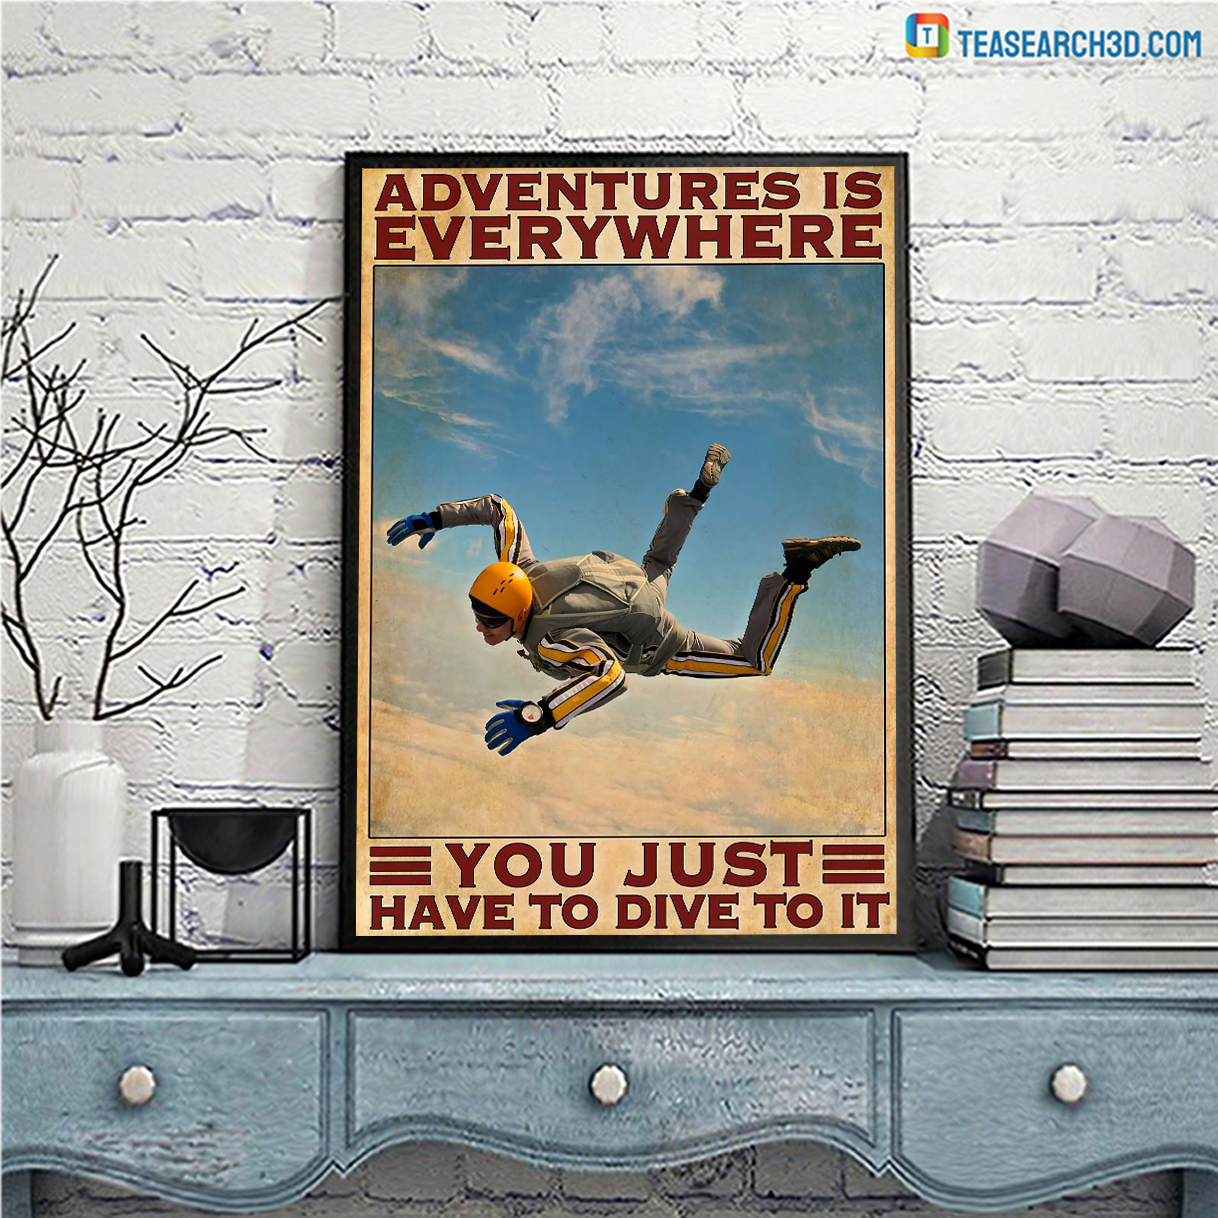 Skydivers aventures is everywhere you just have to dive to it poster